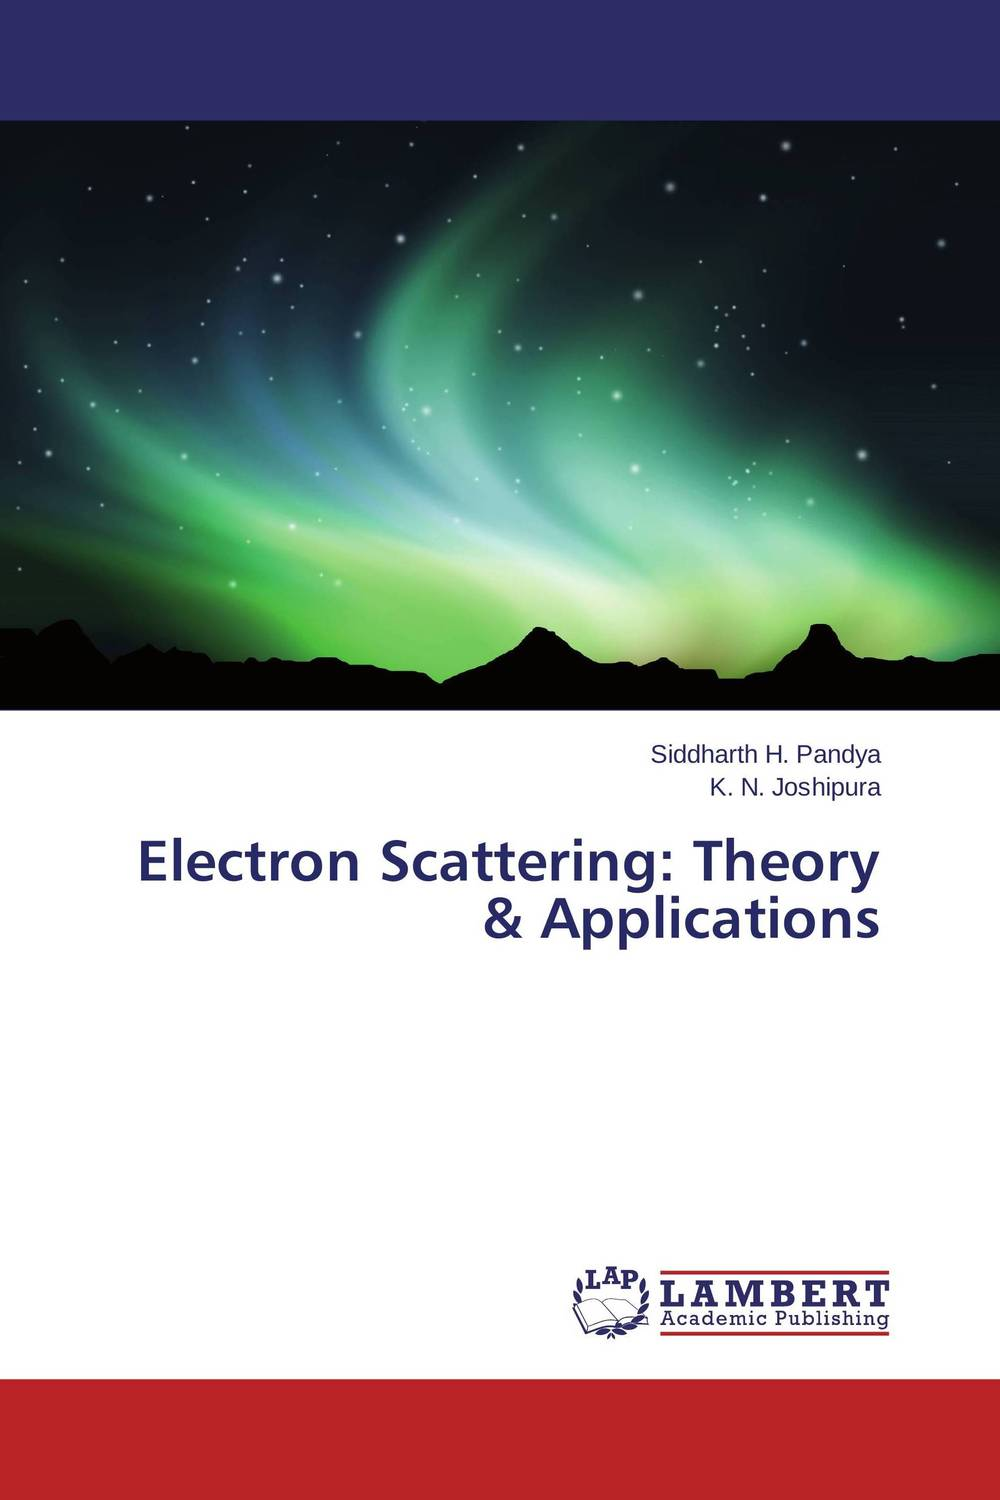 Electron Scattering: Theory & Applications relativistic theory of electron transport in magnetic layers